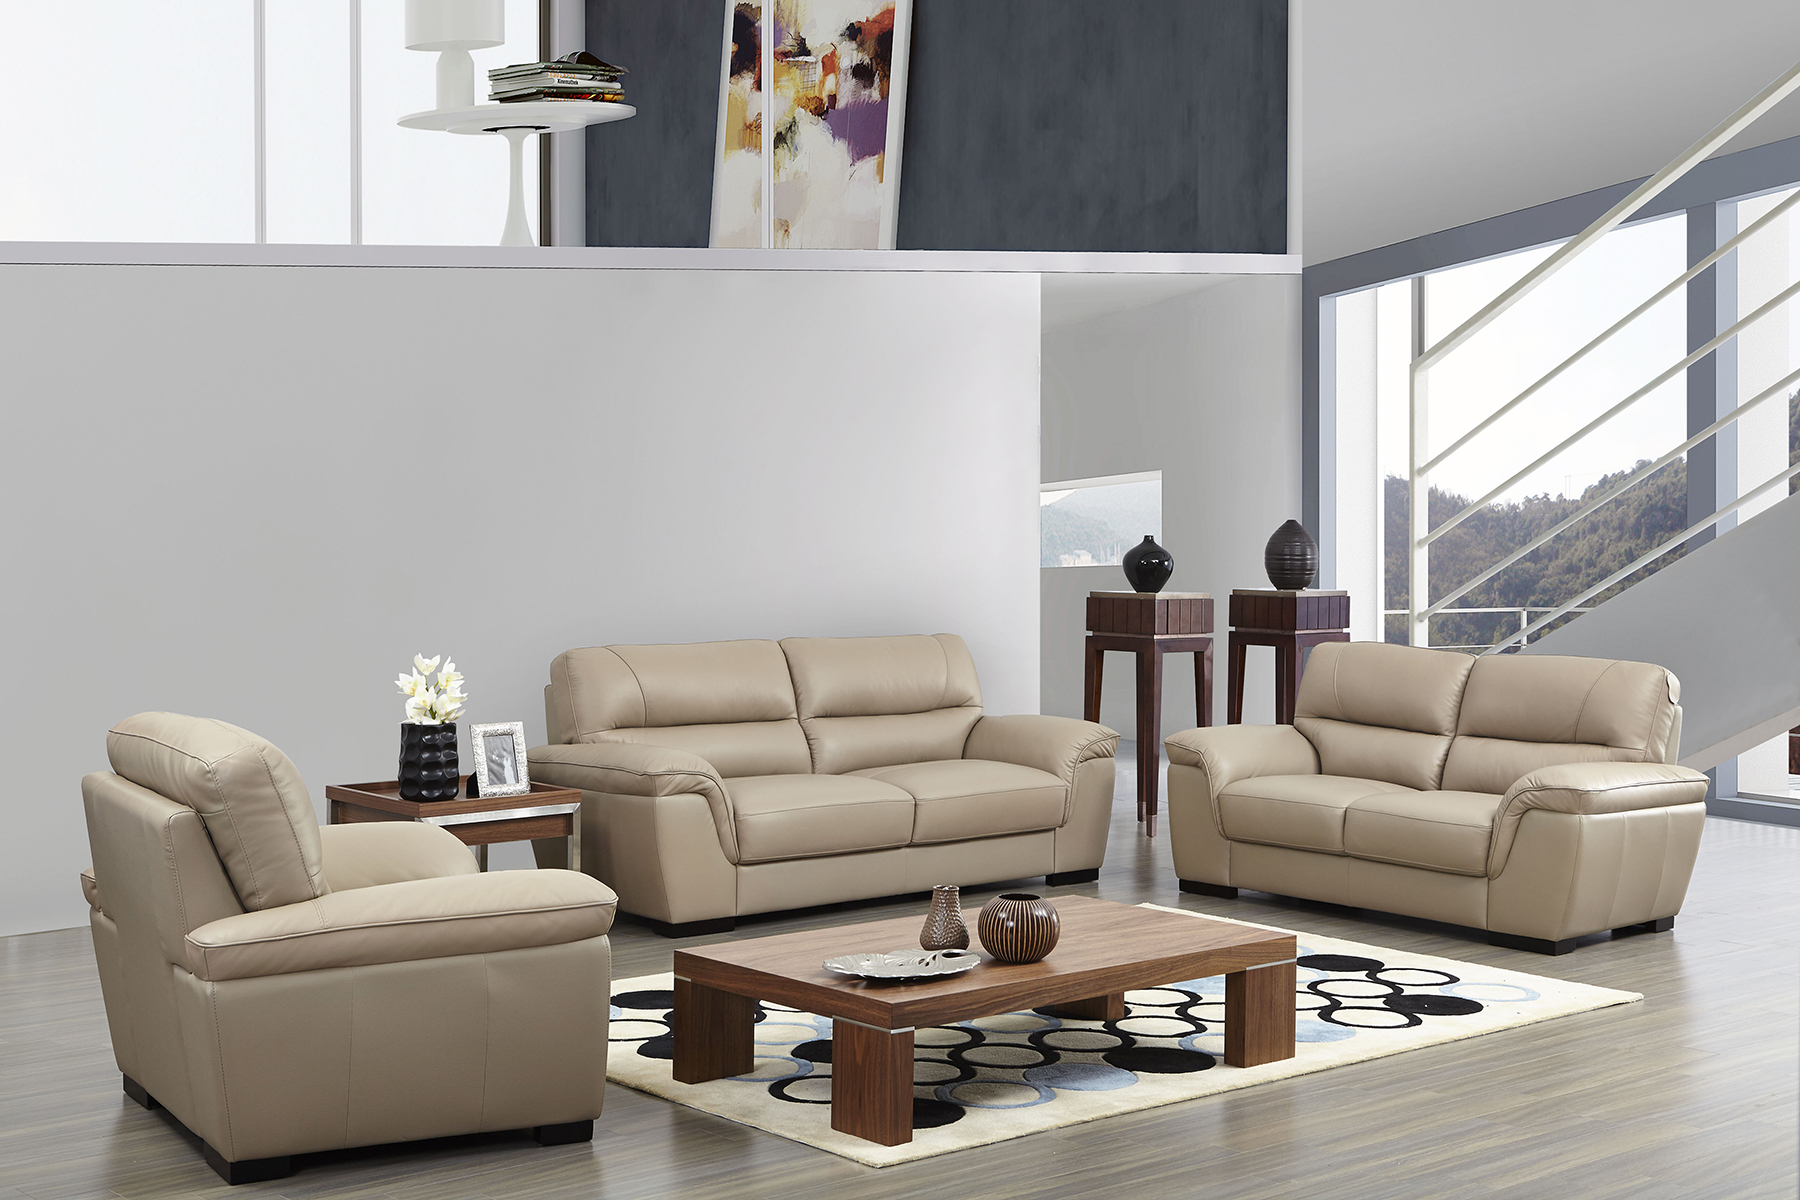 Contemporary beige leather stylish sofa set with wooden for Contemporary living room furniture sets